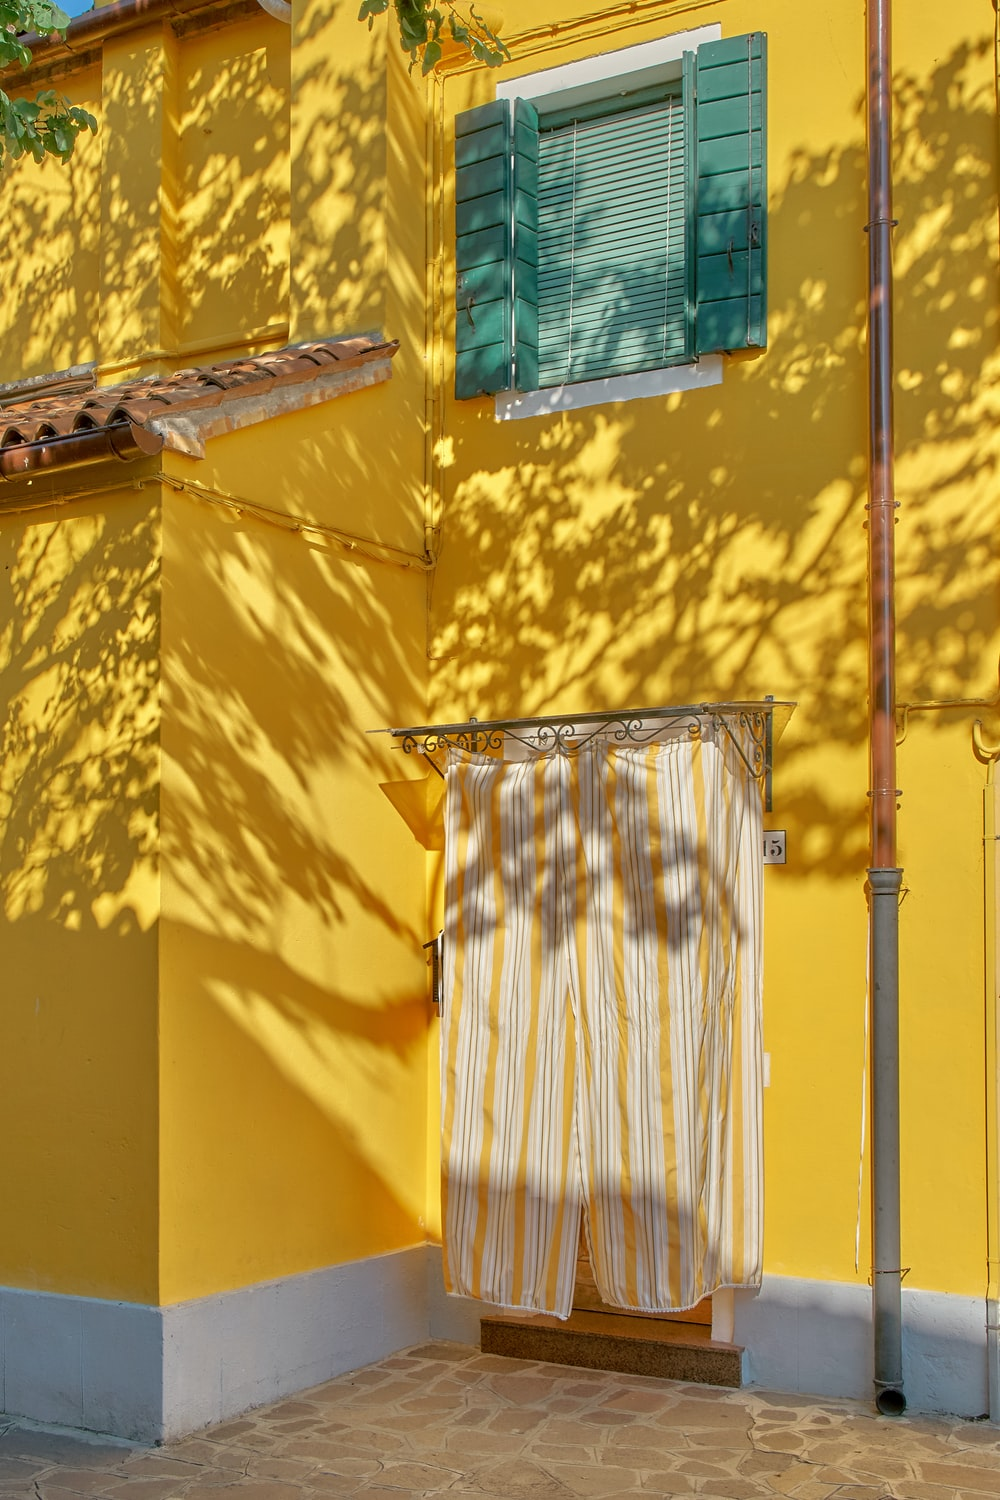 yellow painted concreted building